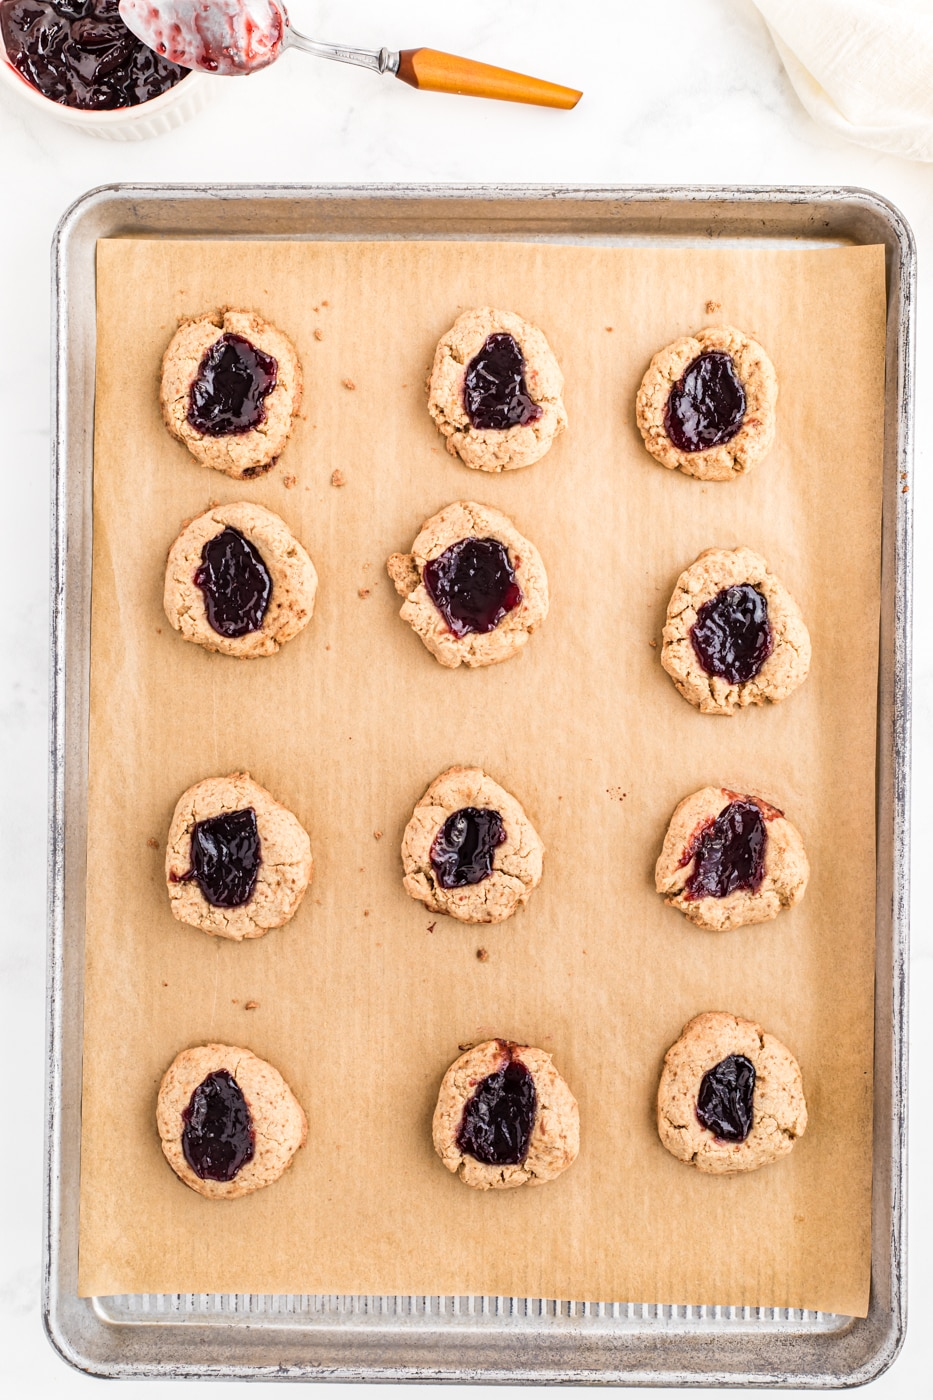 jam-filled thumbprint cookies on a baking sheet for oven